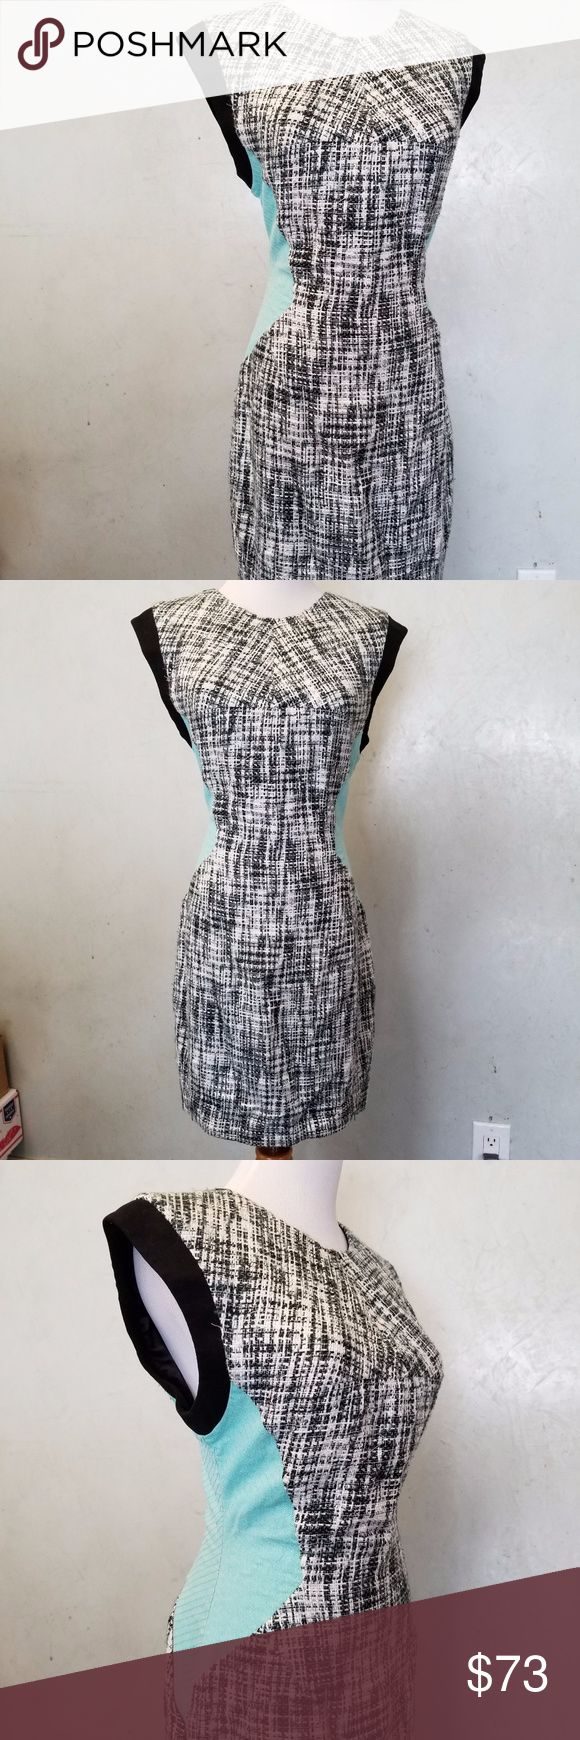 Sheike houndstooth and teal dress In perfect condition like new houndstooth dress with an extension in the skirt ... with mint color sides Sheike Dresses Midi